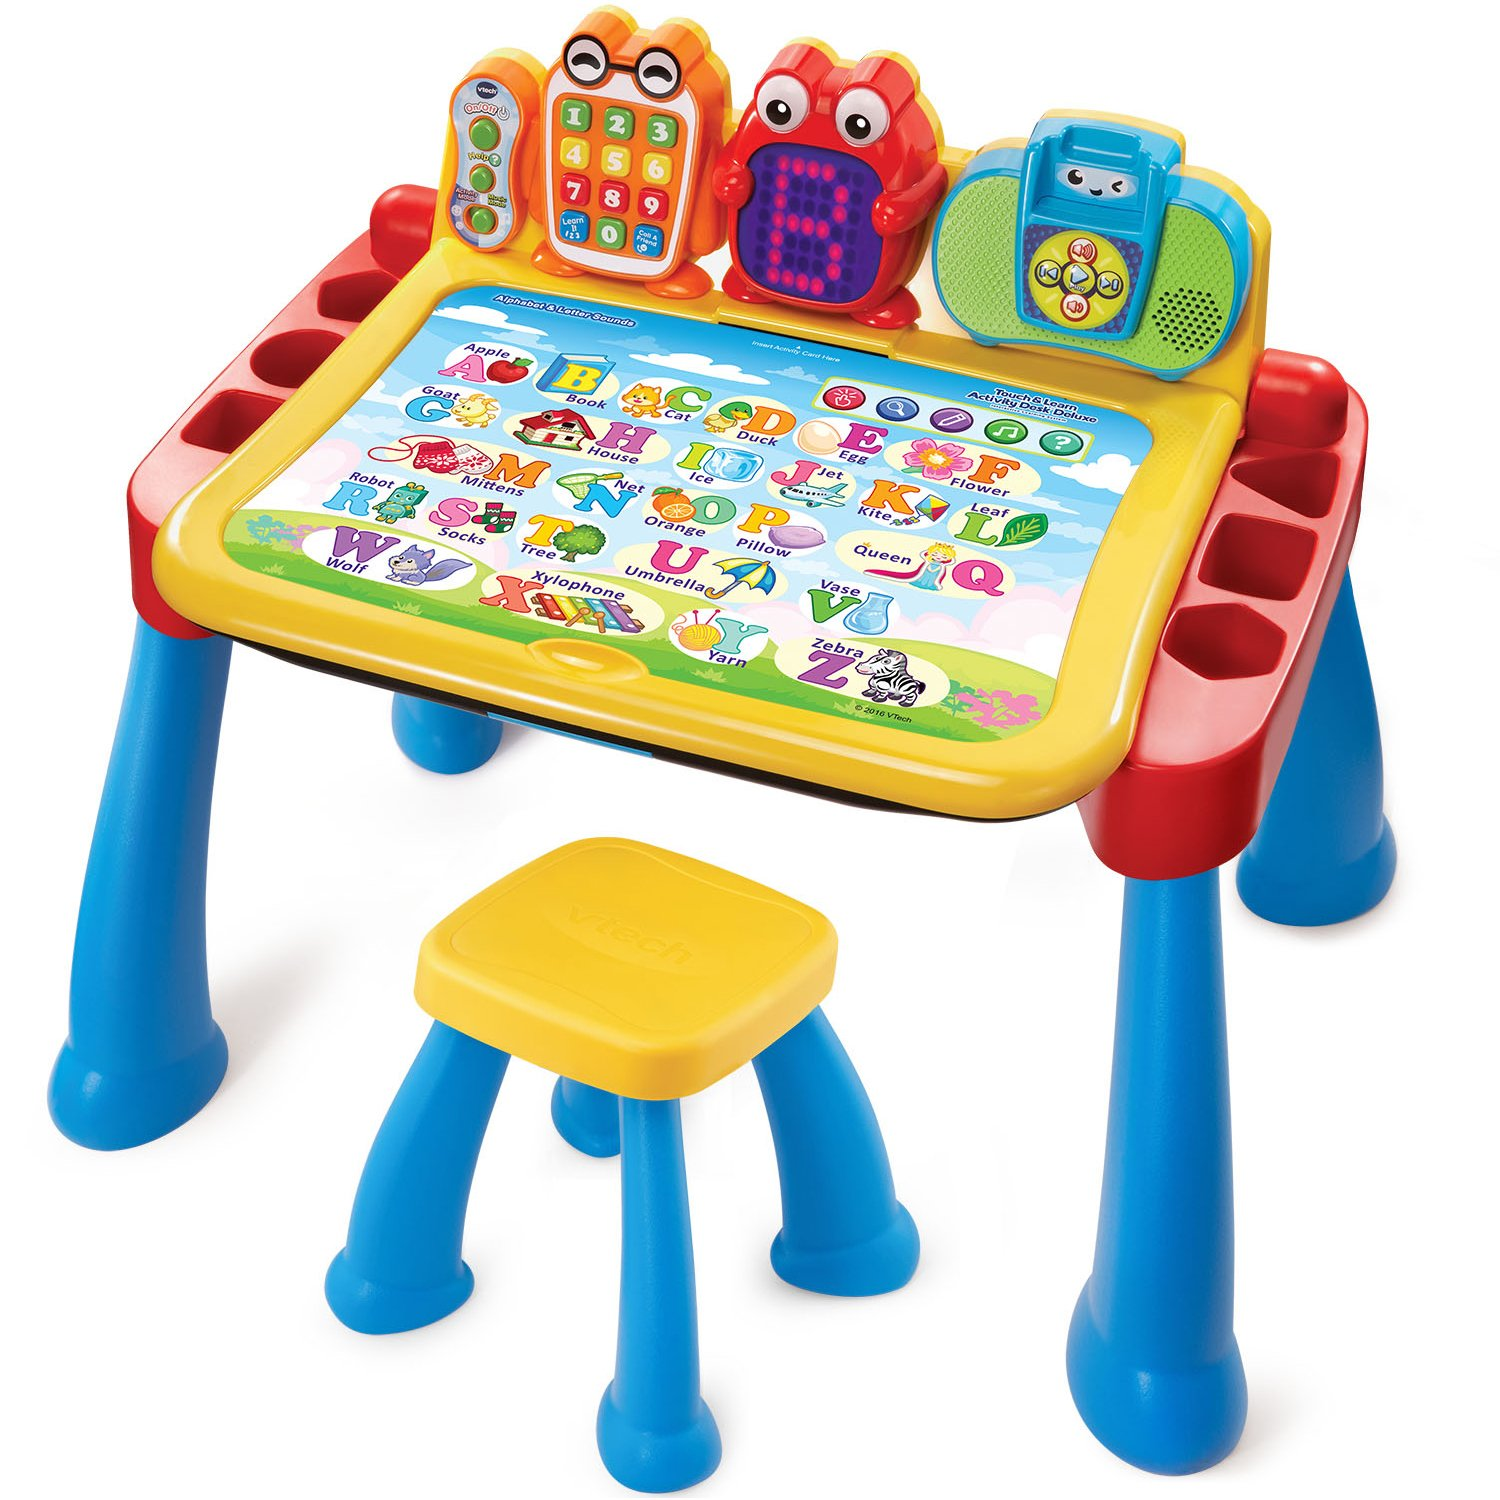 amazoncom vtech touch and learn activity desk deluxe toys  games -